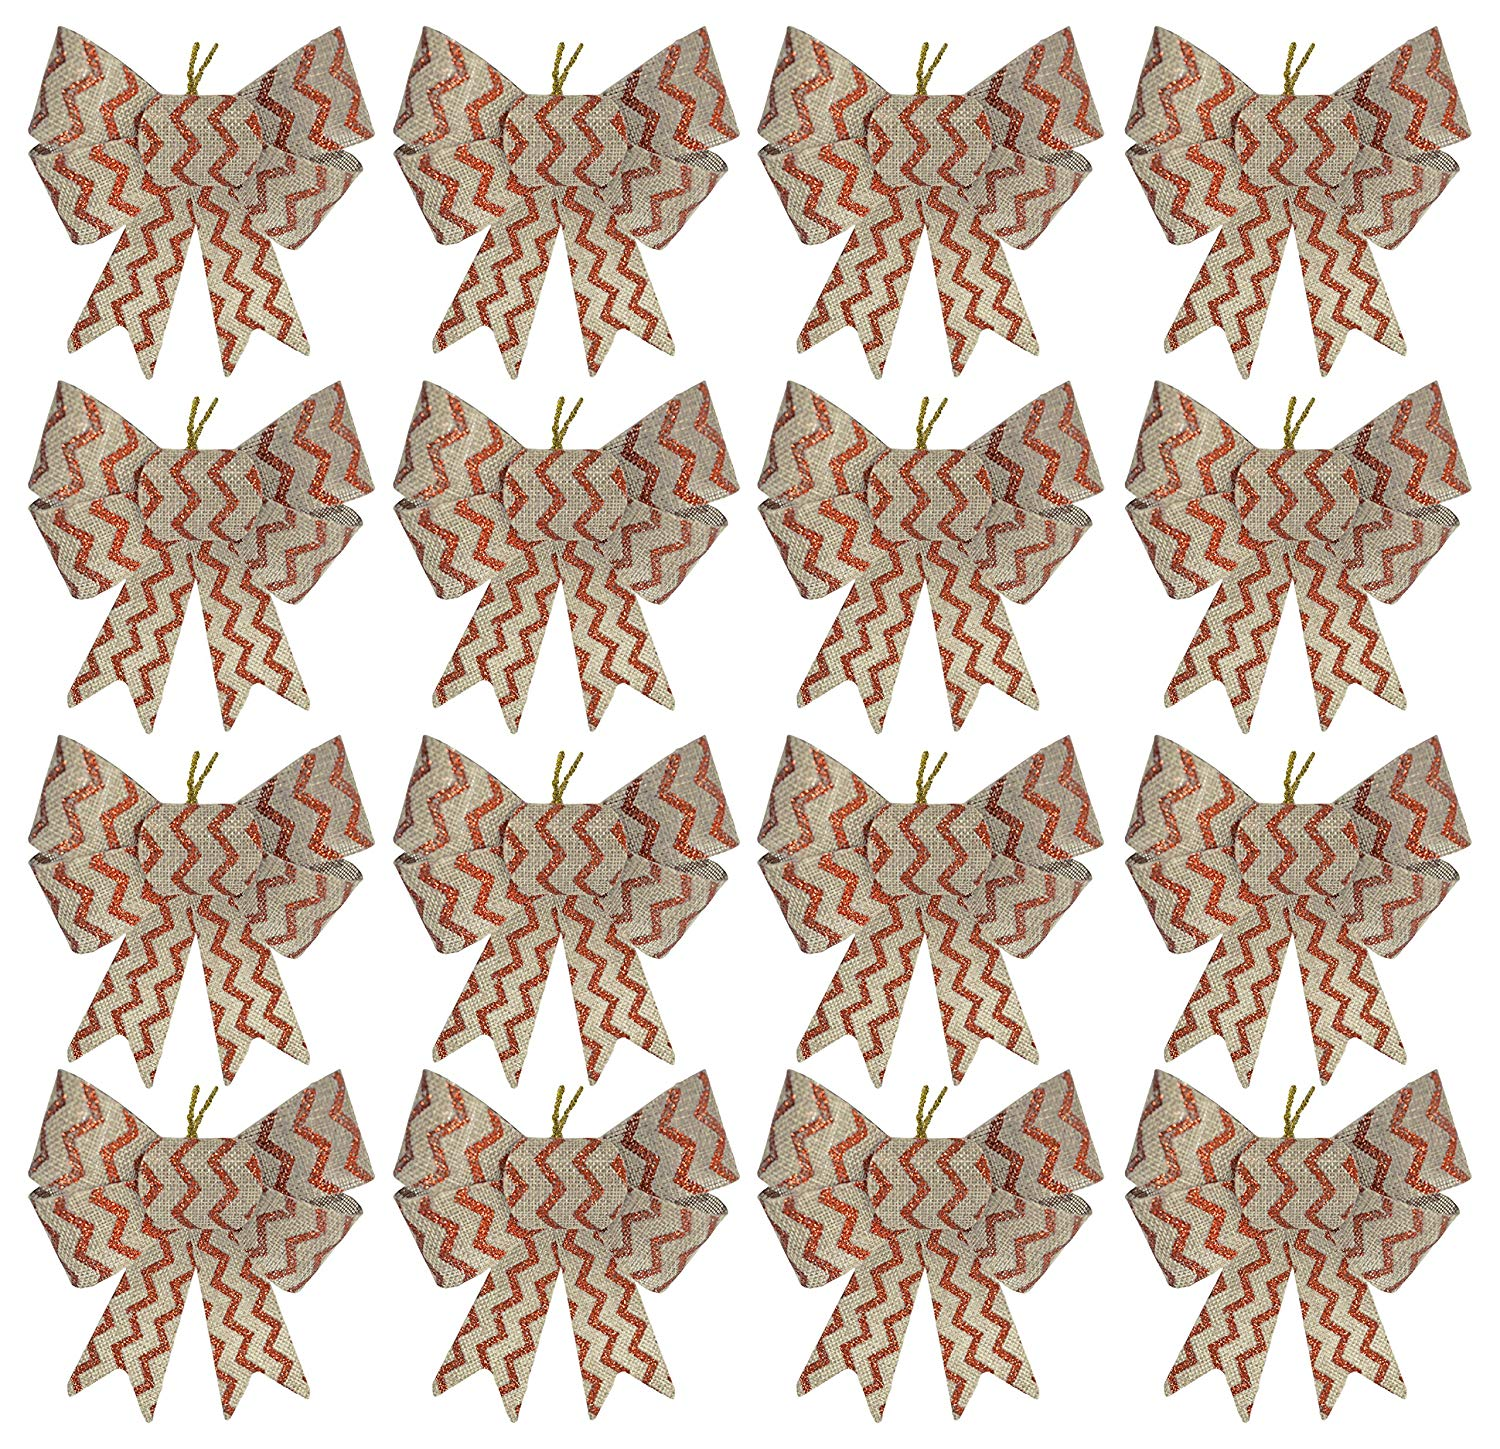 Set of 16 Silver and Red Festive Holiday Christmas Bows - Perfect as Tree Ornaments - Tree Filler - Decorative Ornaments - Perfect for Preparing for the Holidays!